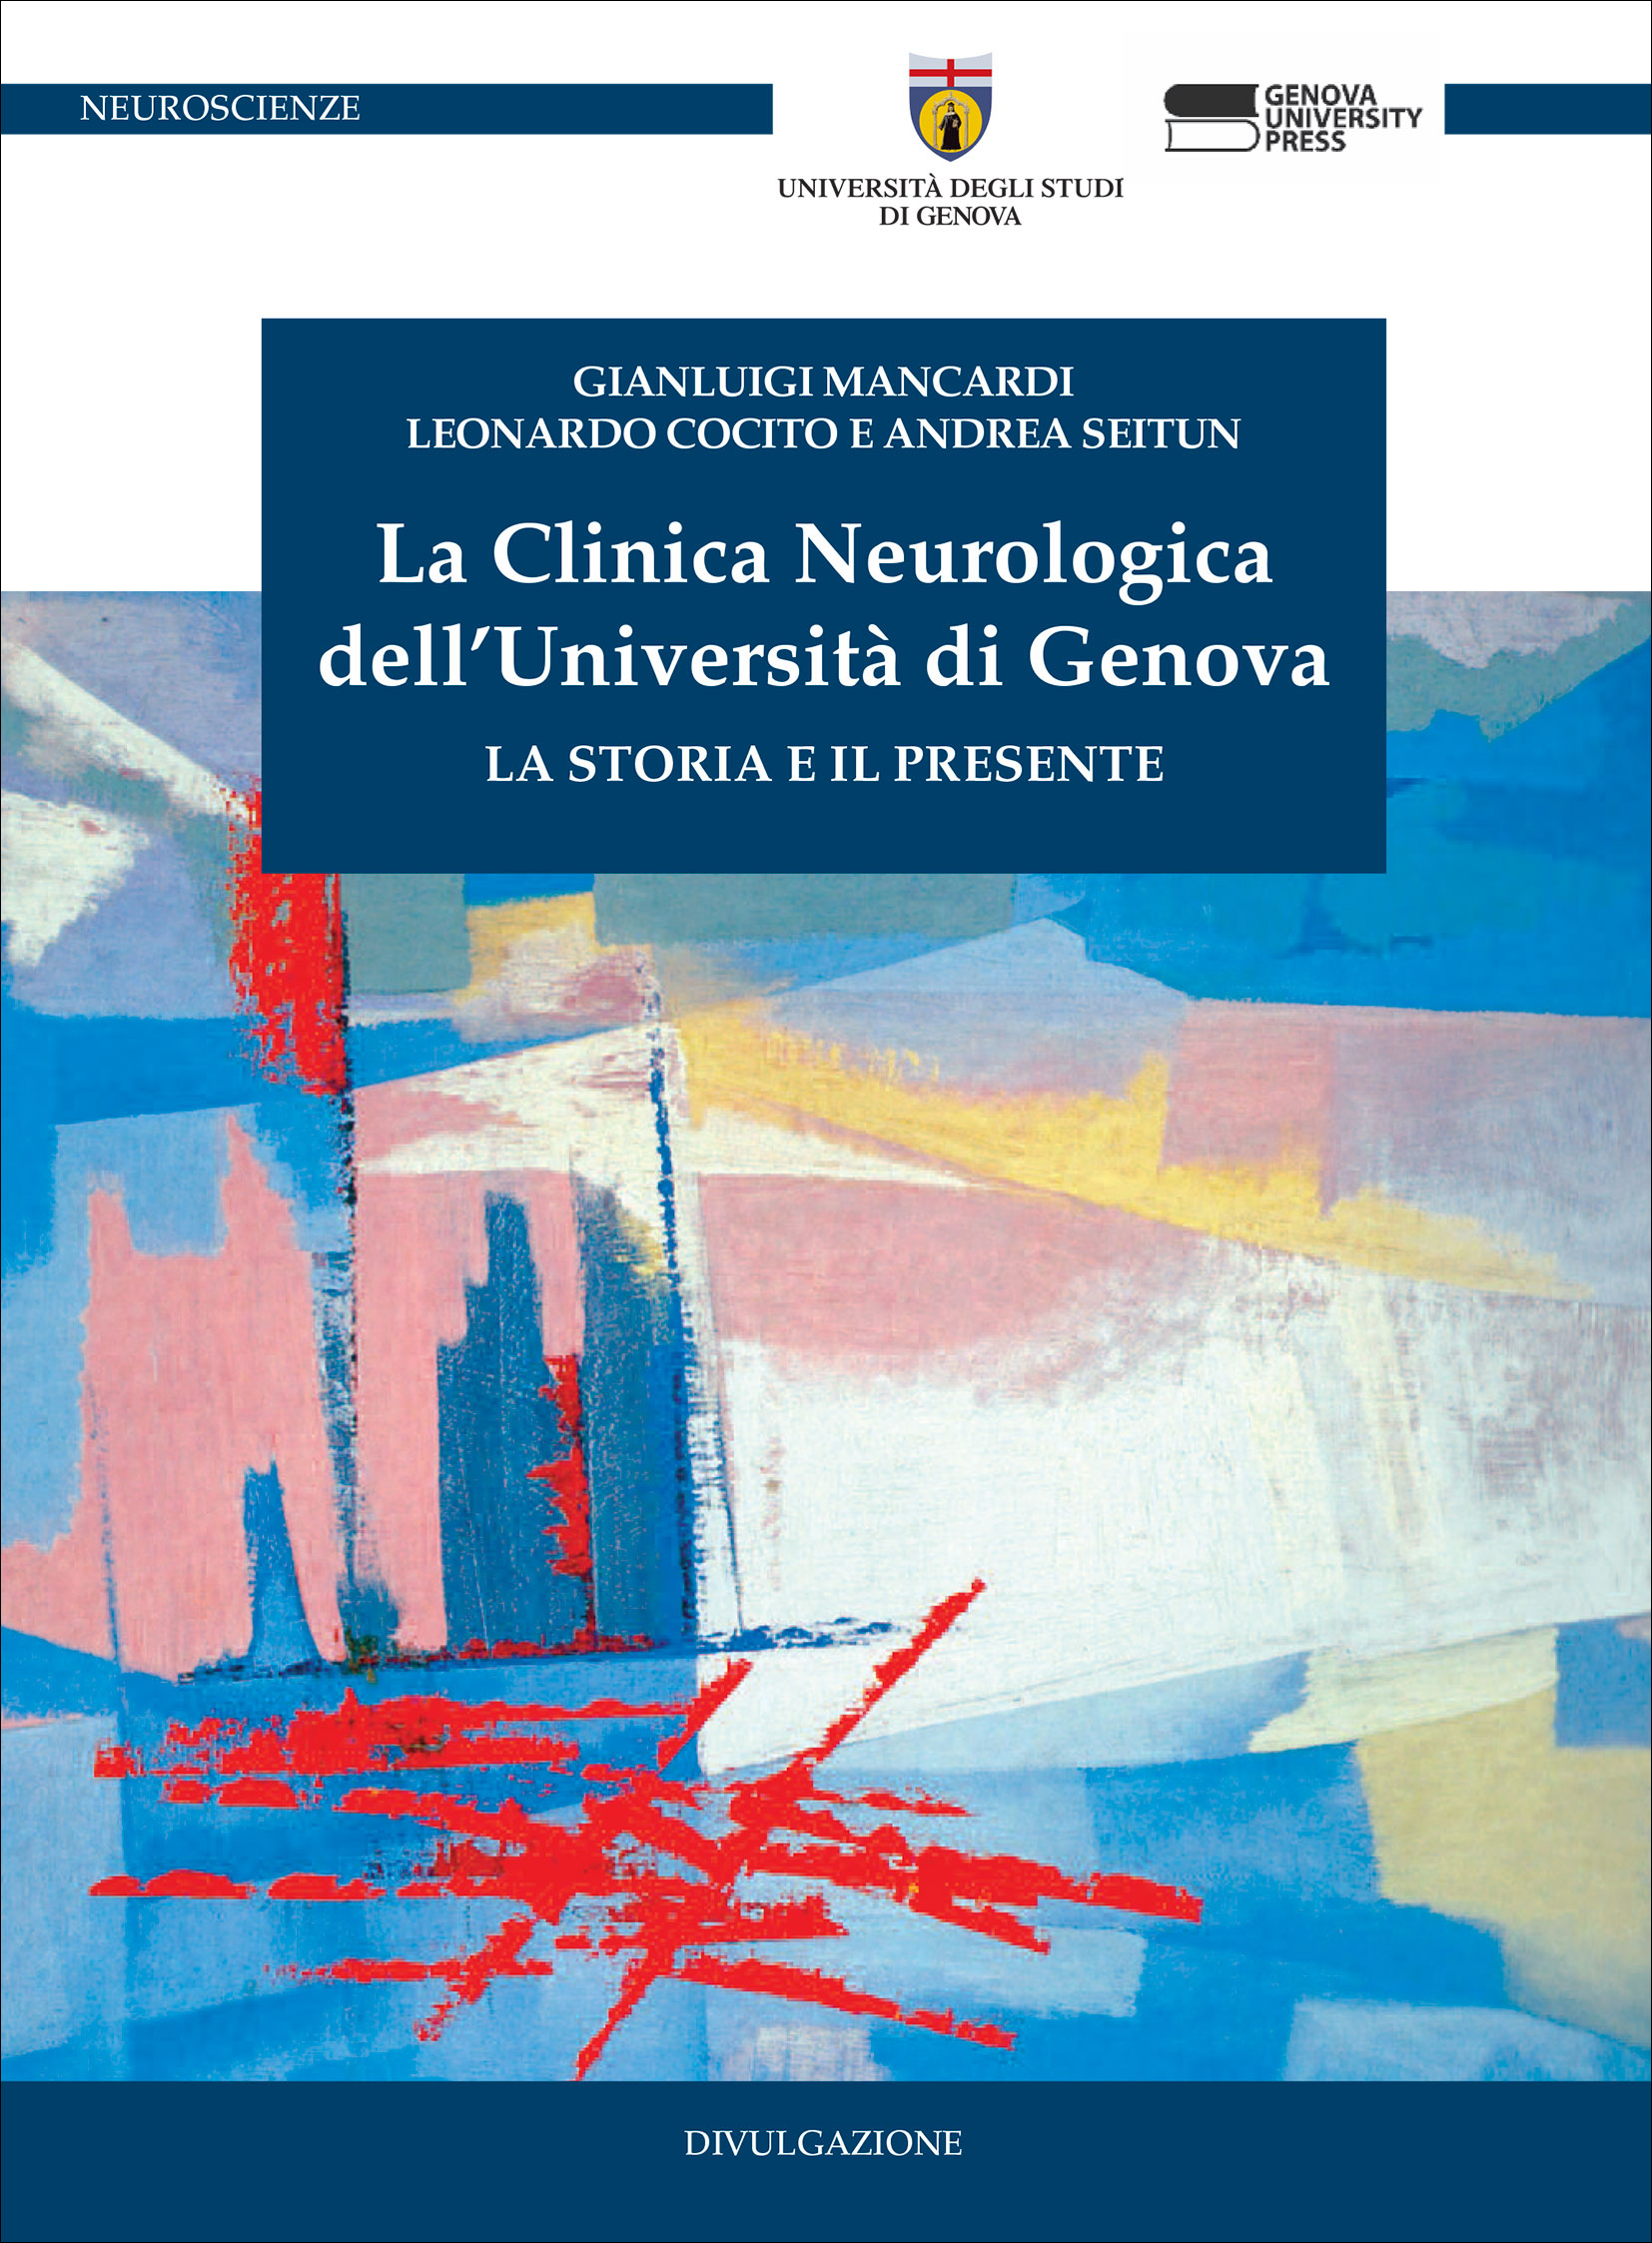 La Clinica Neurologica dell'Università di Genova